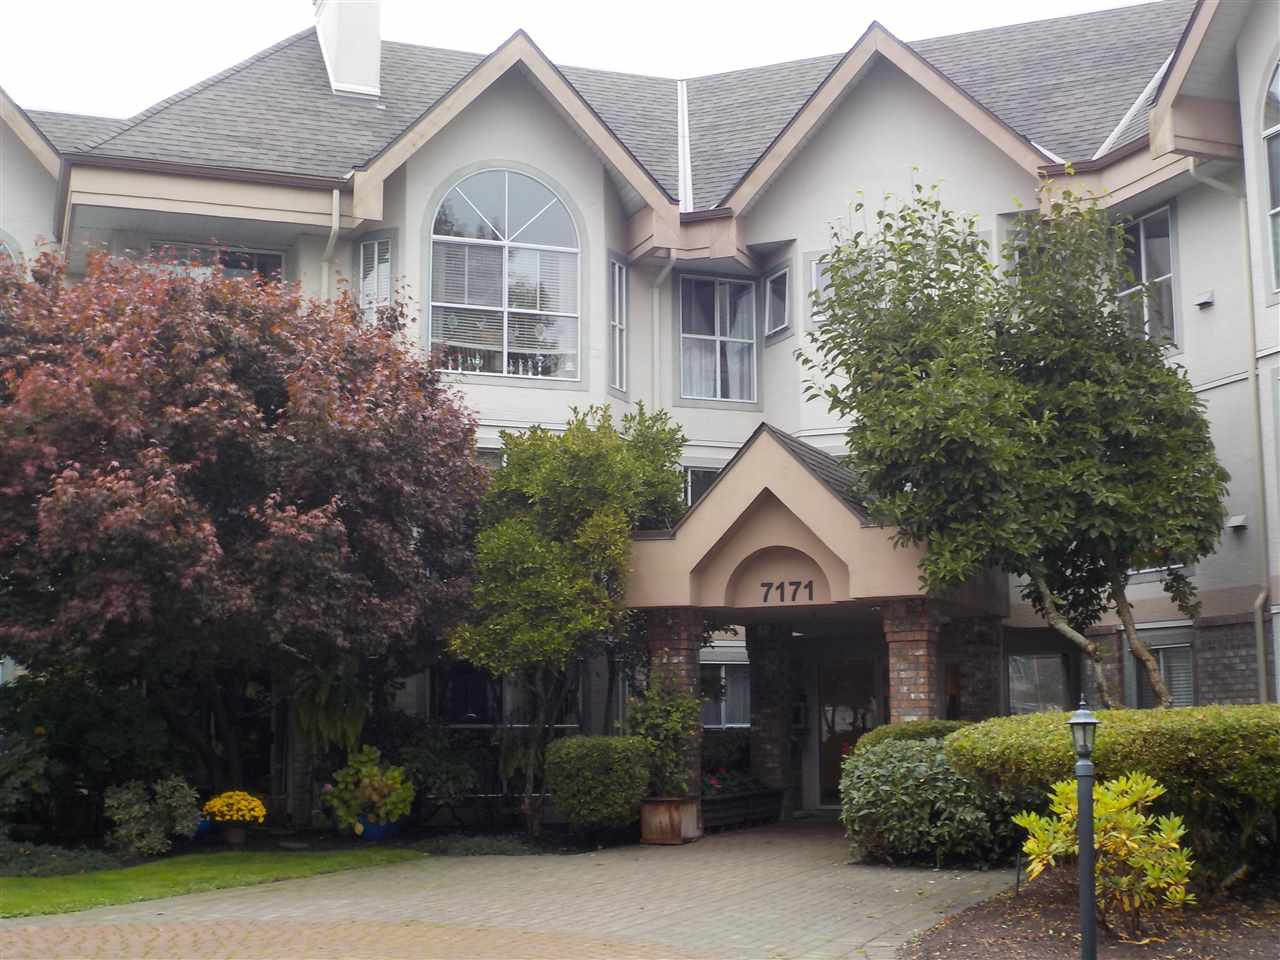 """Main Photo: 318 7171 121 Street in Surrey: West Newton Condo for sale in """"Highlands"""" : MLS®# R2505061"""